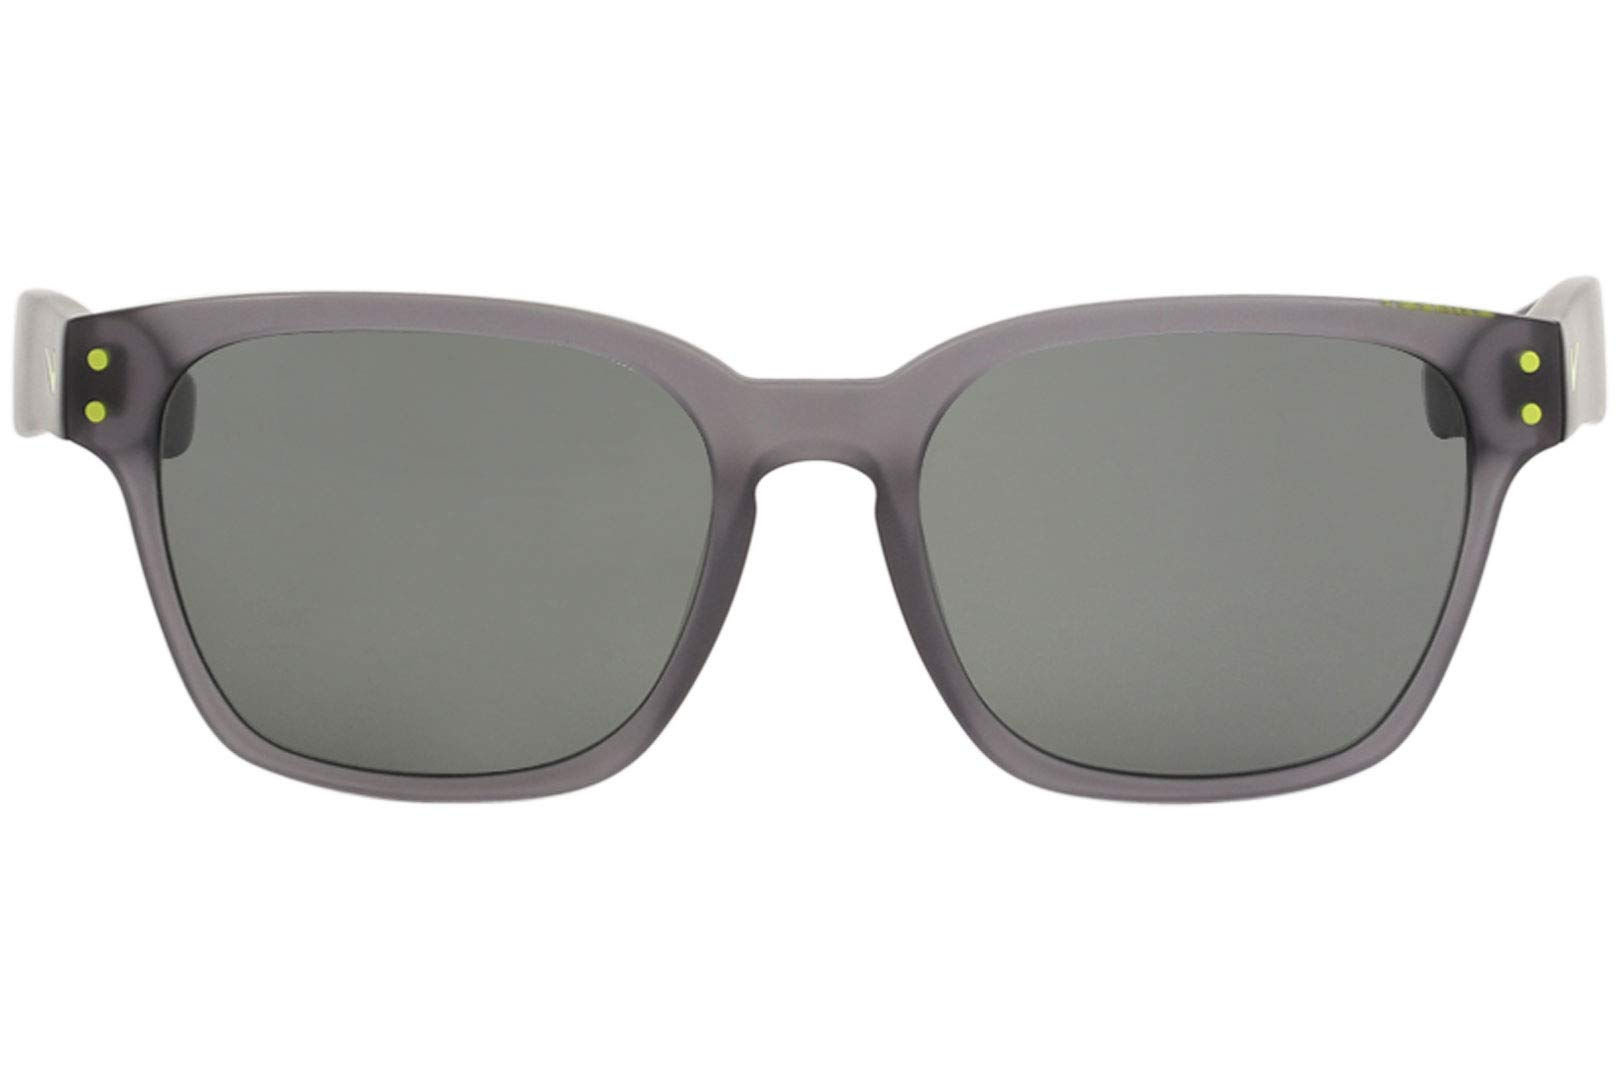 Nike EV0877-003 Volano Sunglasses (One Size), Matte Crystal Grey/Cyber, Grey Lens by Nike (Image #2)